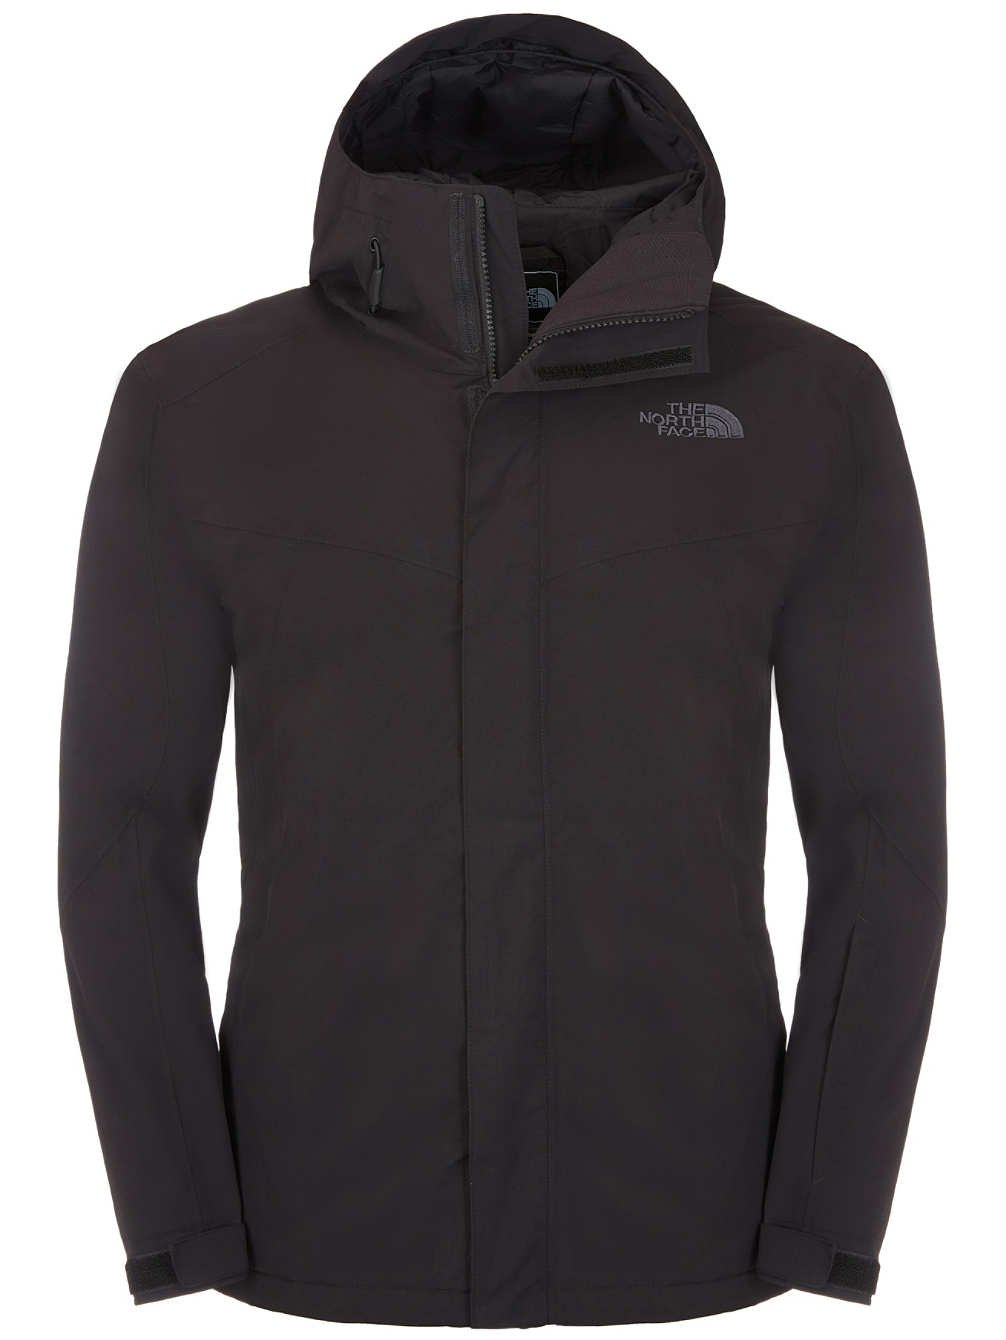 The North Face Independence Jacket Men – Wintersportjacke bestellen